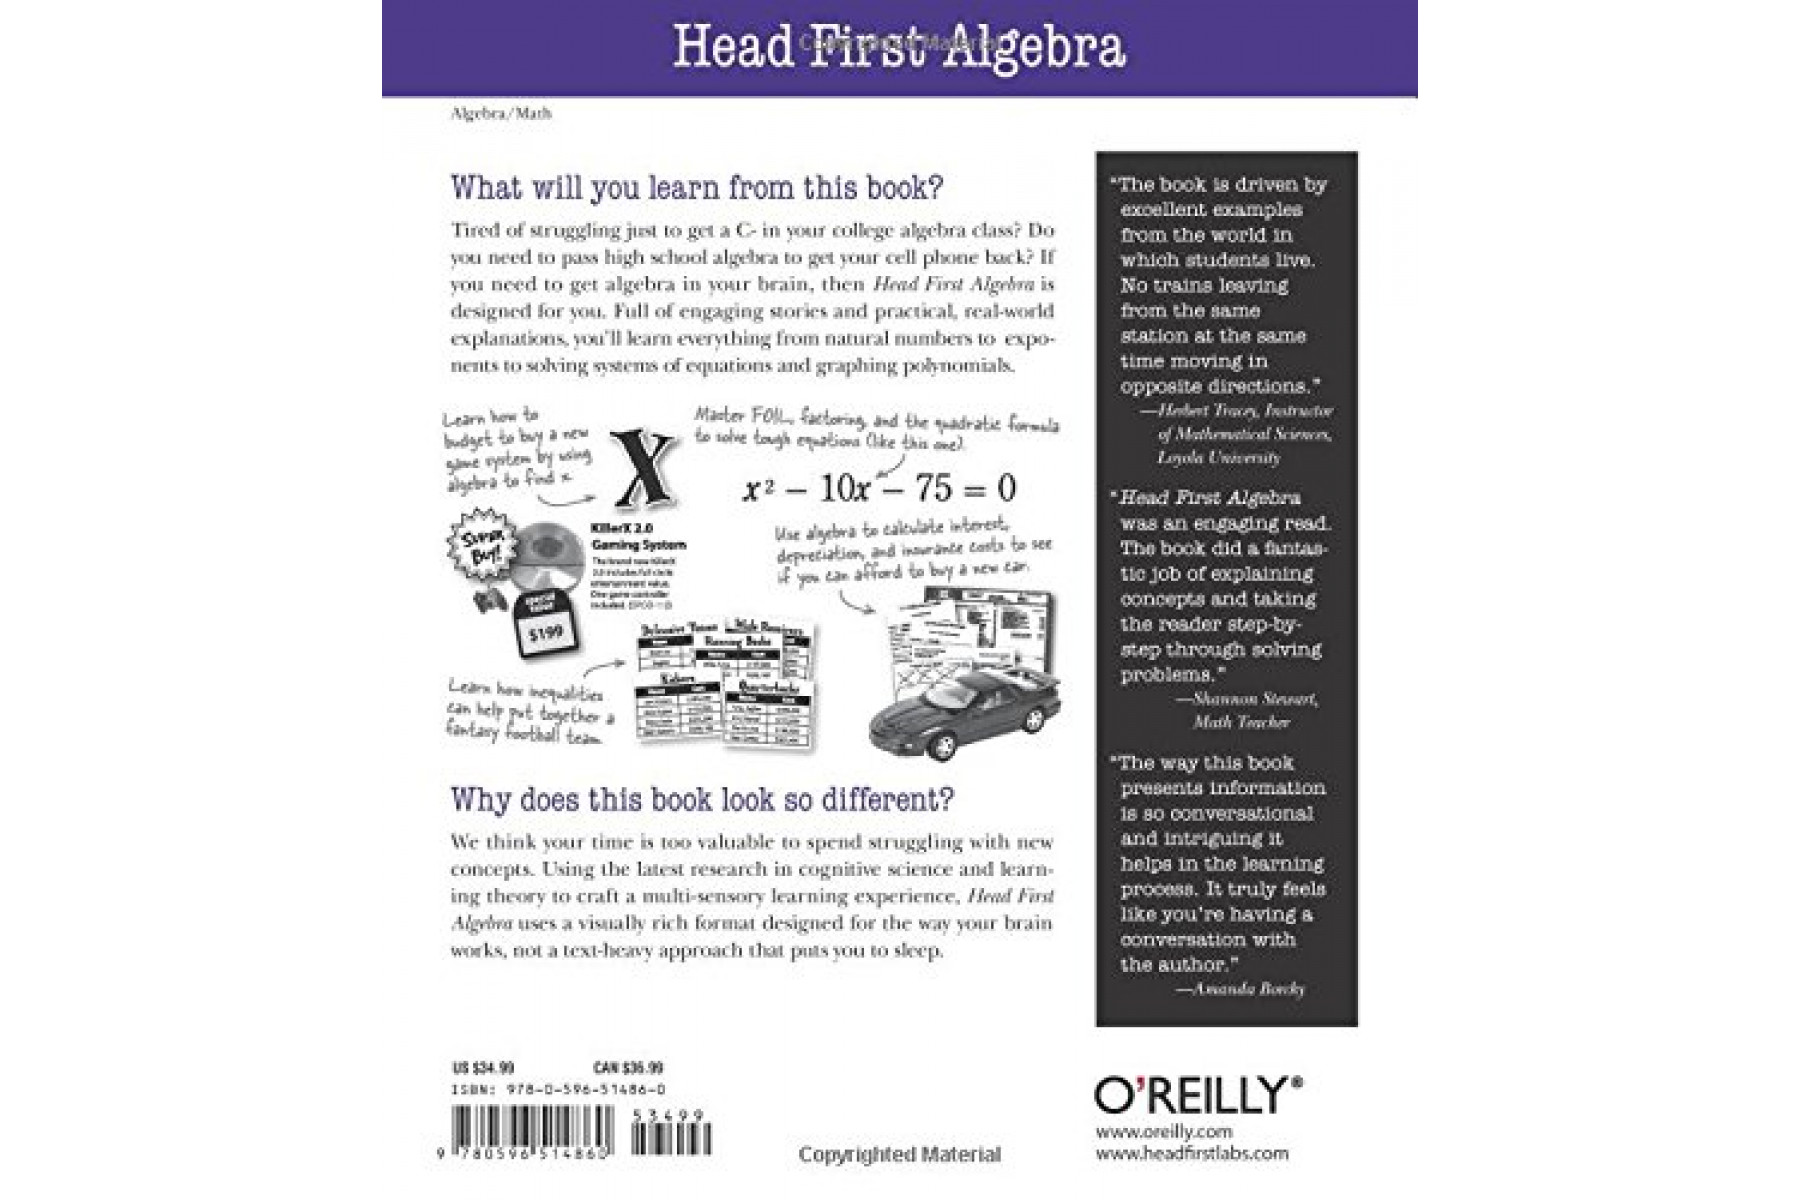 Head First Algebra: A Learner's Guide to Algebra